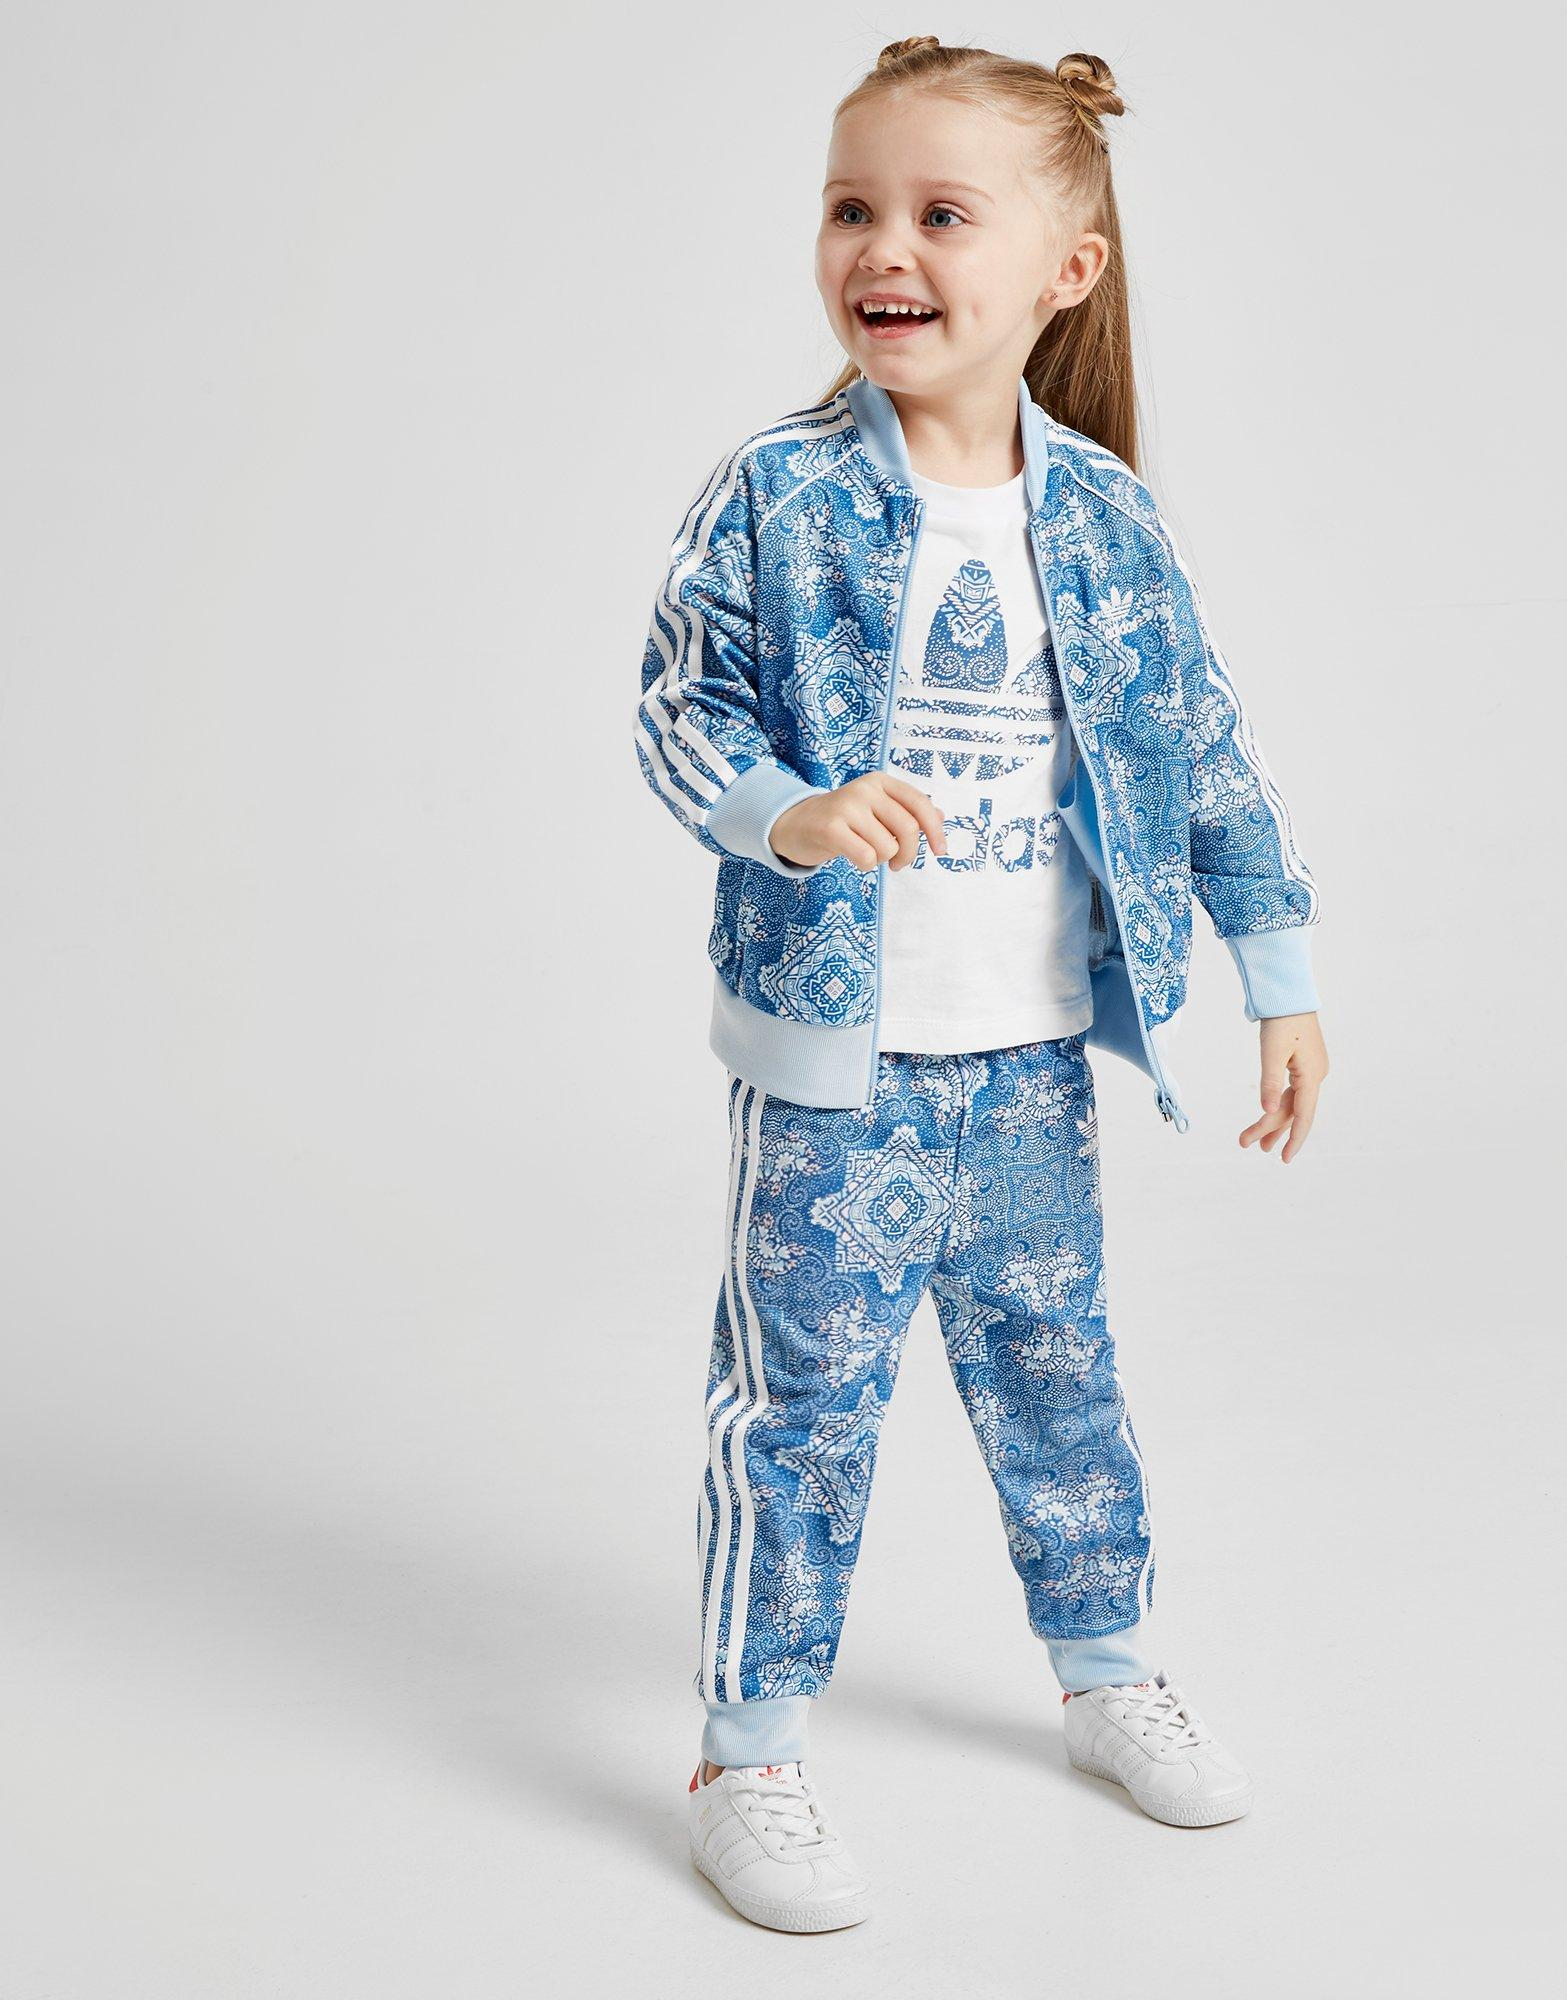 reputable site 7abe2 3c860 Details about New adidas Originals Girls  All Over Print Superstar  Tracksuit Infant